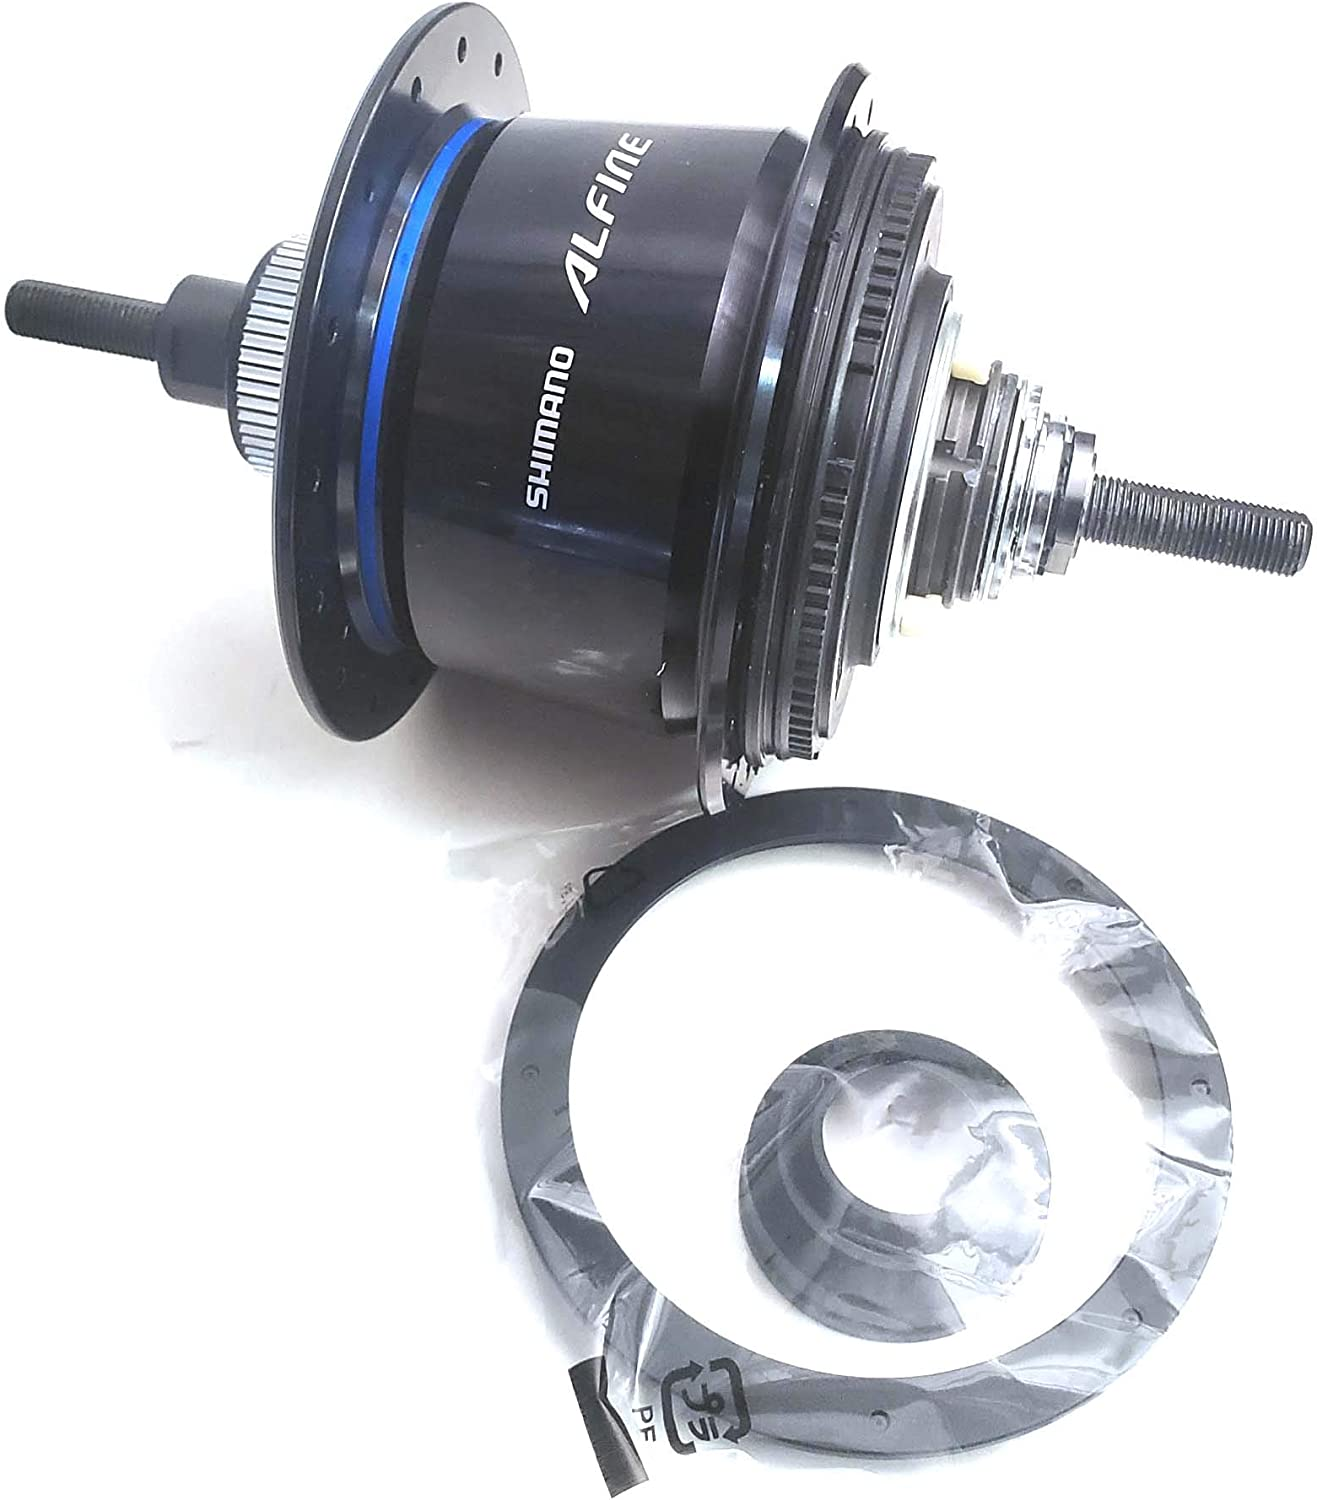 SHIMANO Kansas City Mall Cycling Alfine OFFicial site 8 Speed Bicycle Internal SG-S705 Gear Hub